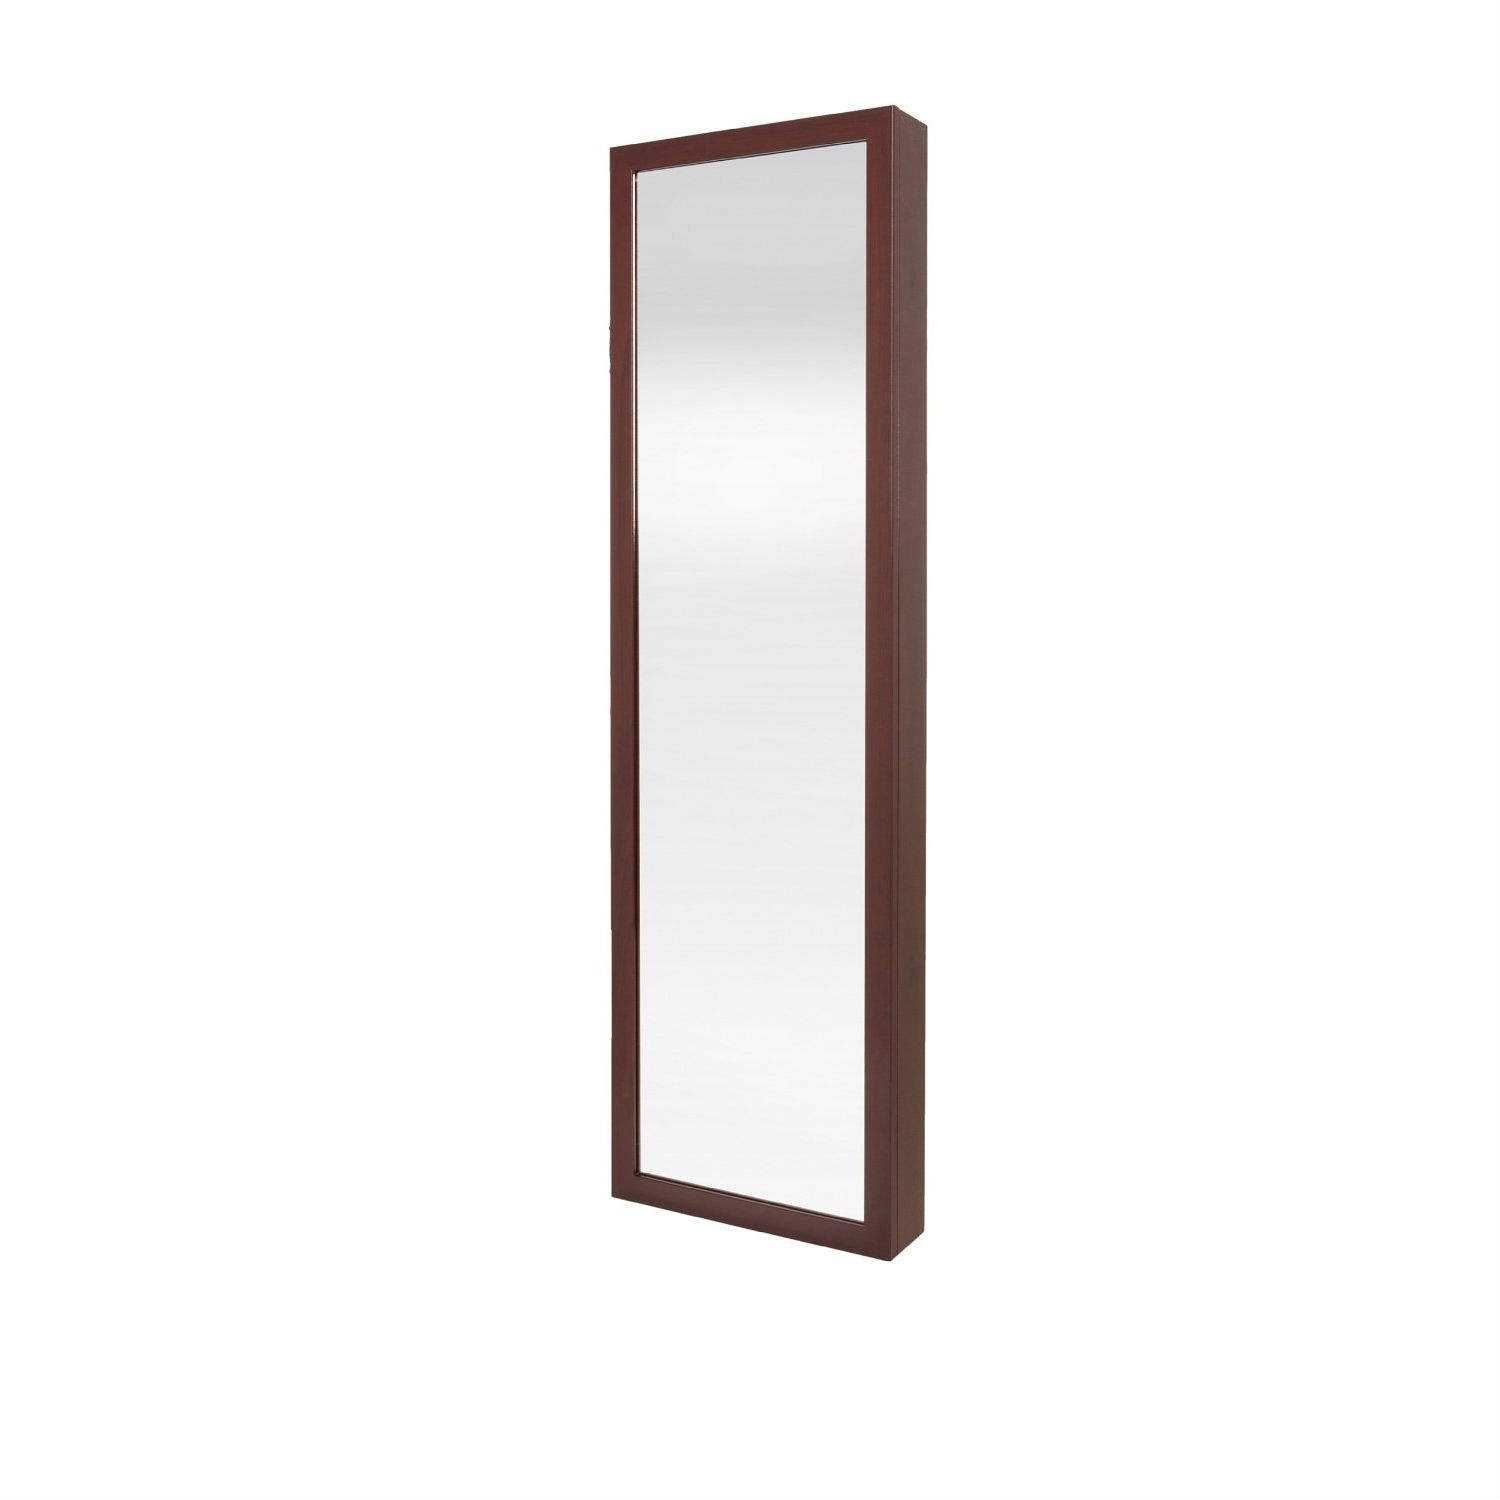 Wall / Door Mount Jewelry Armoire / Full Length Mirror in Cherry Finish, DM01297521 :  This Wall / Door Mount Jewelry Armoire / Full Length Mirror in Cherry Finish would be a great addition to your home. Jewelry armoire mirror.-Full length mirror hides a secret jewelry armoire.-Framed mirror.-Attaches to either wall or hangs on door with special brackets supplied. Construction: -Wood, metal and glass construction. Color/Finish: -Cherry finish.